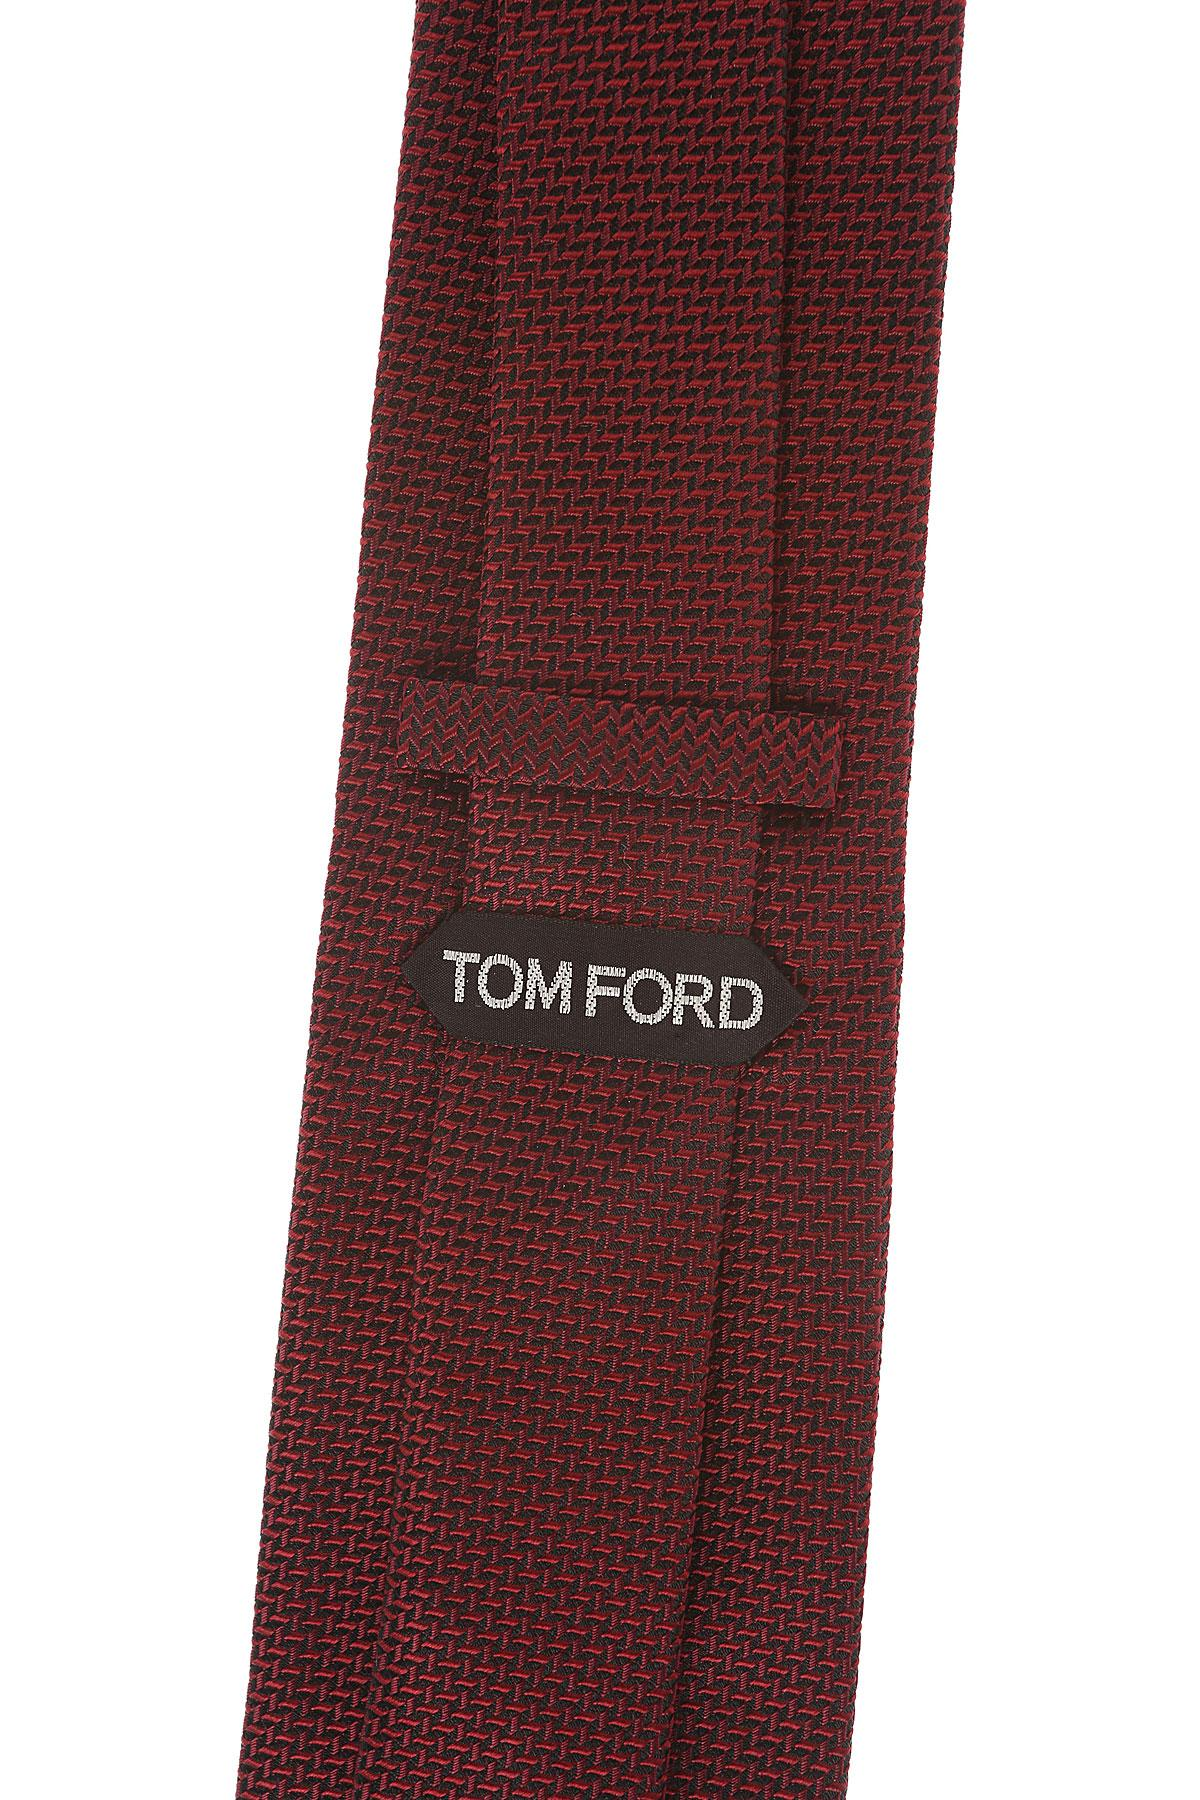 527a115b760e Tom Ford - Red Ties On Sale for Men - Lyst. View fullscreen